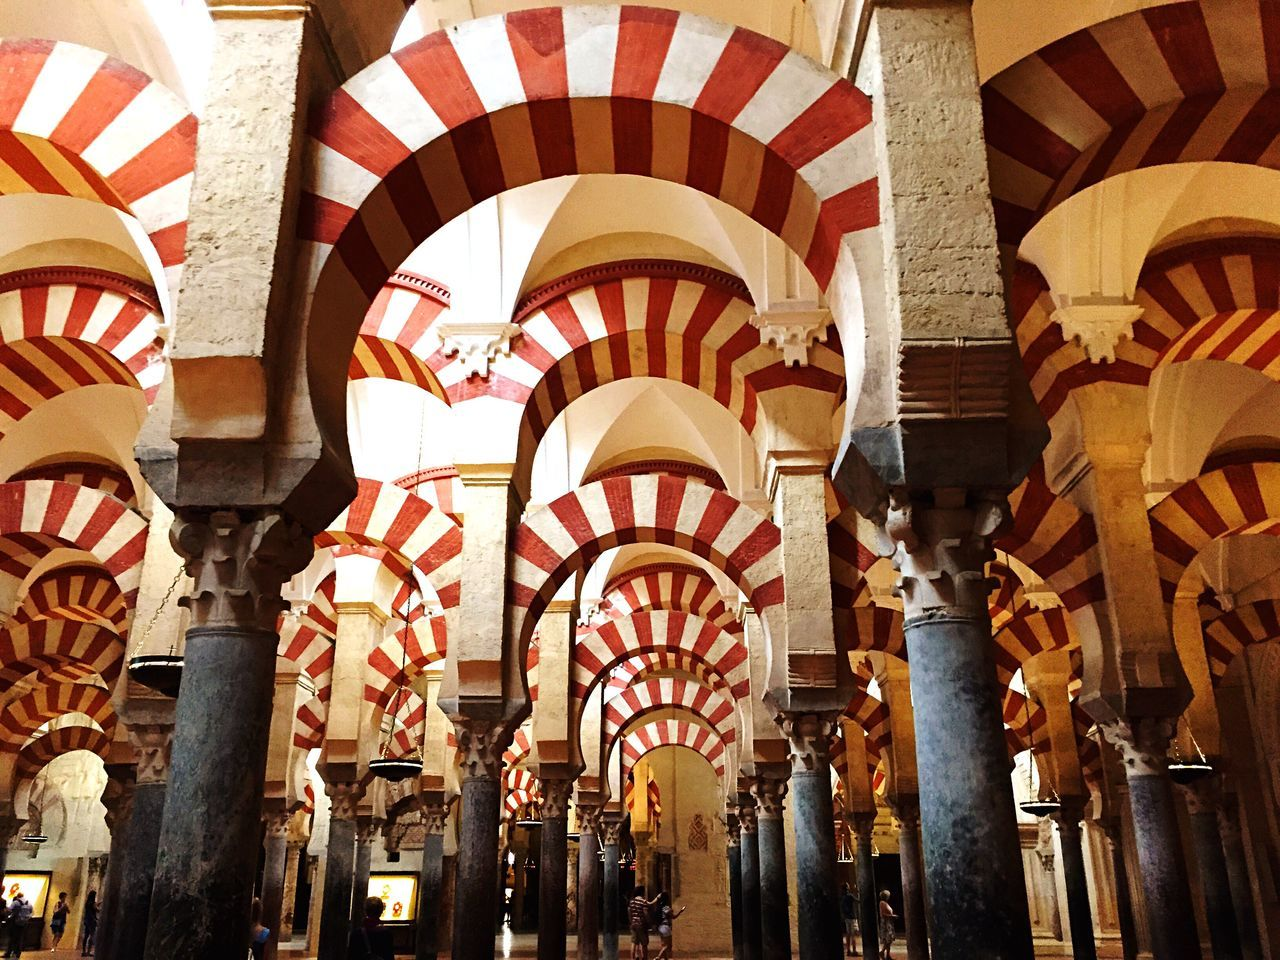 Mezquita de Córdoba mosque-cathedral Traveling Seeing The Sights SPAIN Córdoba Historical Building Historical Monuments History Architecture Architecture_collection Architecturelovers Architectureporn Beautiful Travel Photography Europe Trip Europe Colors Sacred Places Enjoying Life MyPhotography